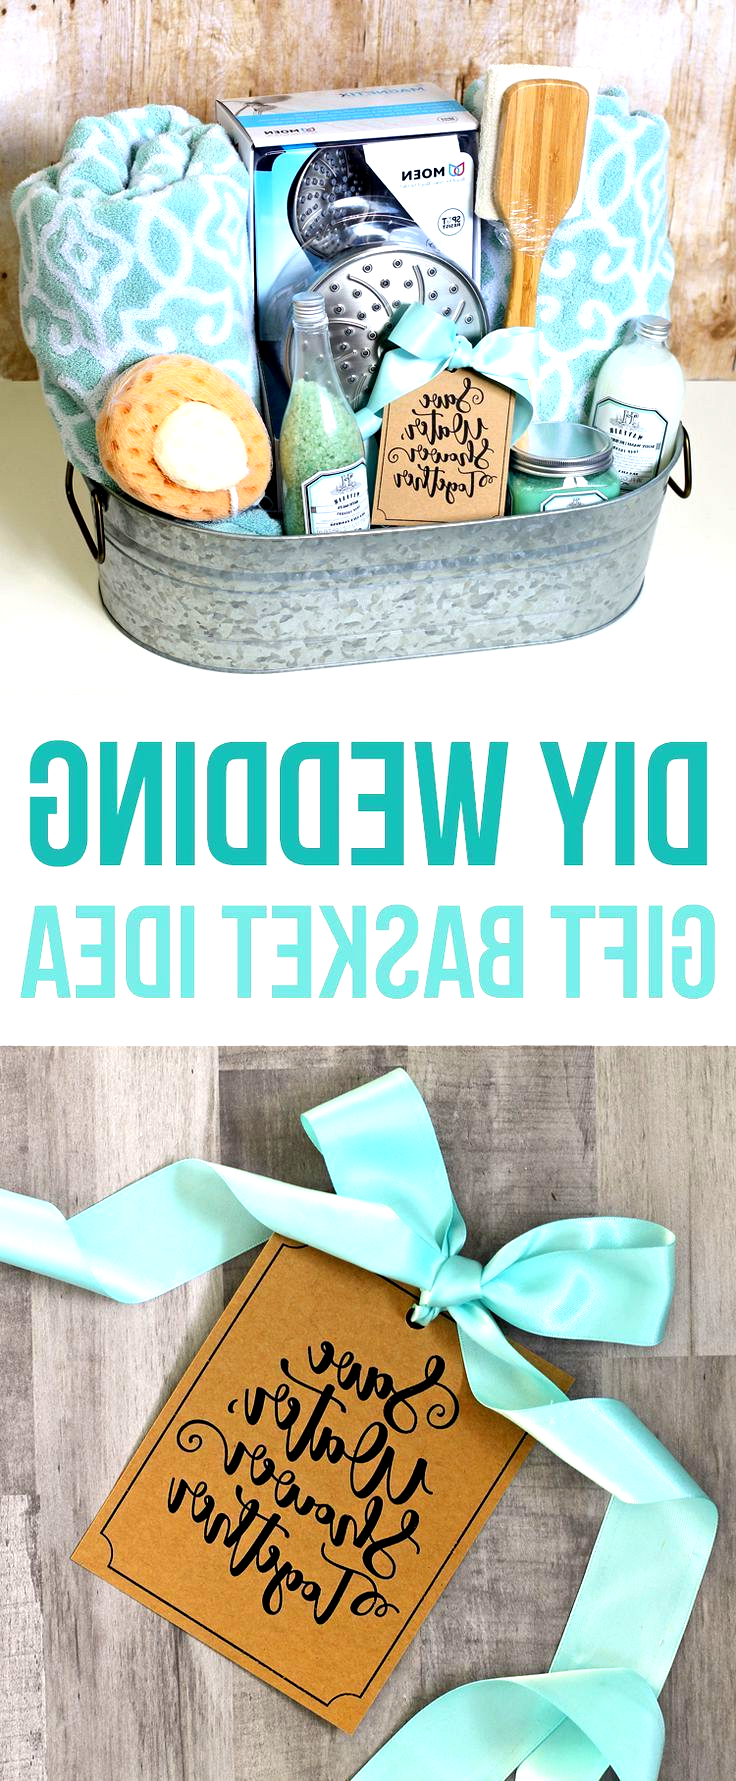 This DIY wedding gift basket idea has a shower theme and includes bath towels, a…